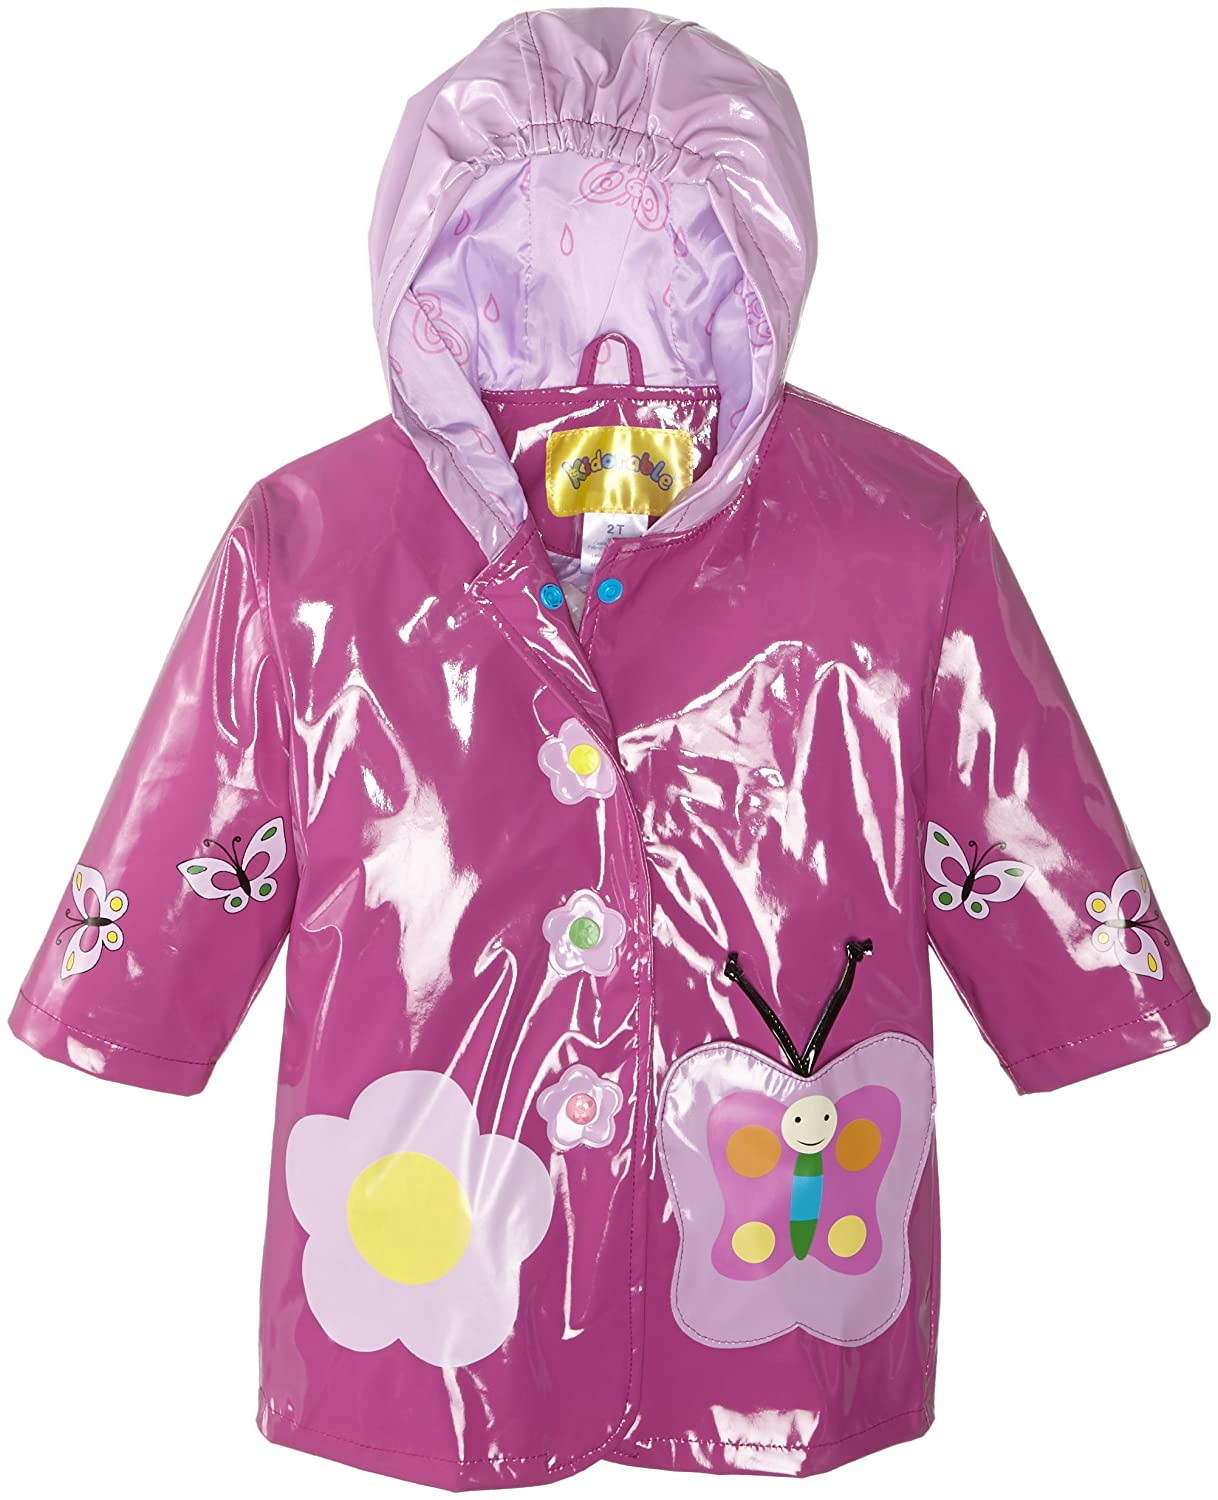 Kidorable Purple Butterfly PU All-Weather Raincoat for Girls With Fun Flowers and Butterflies 391186